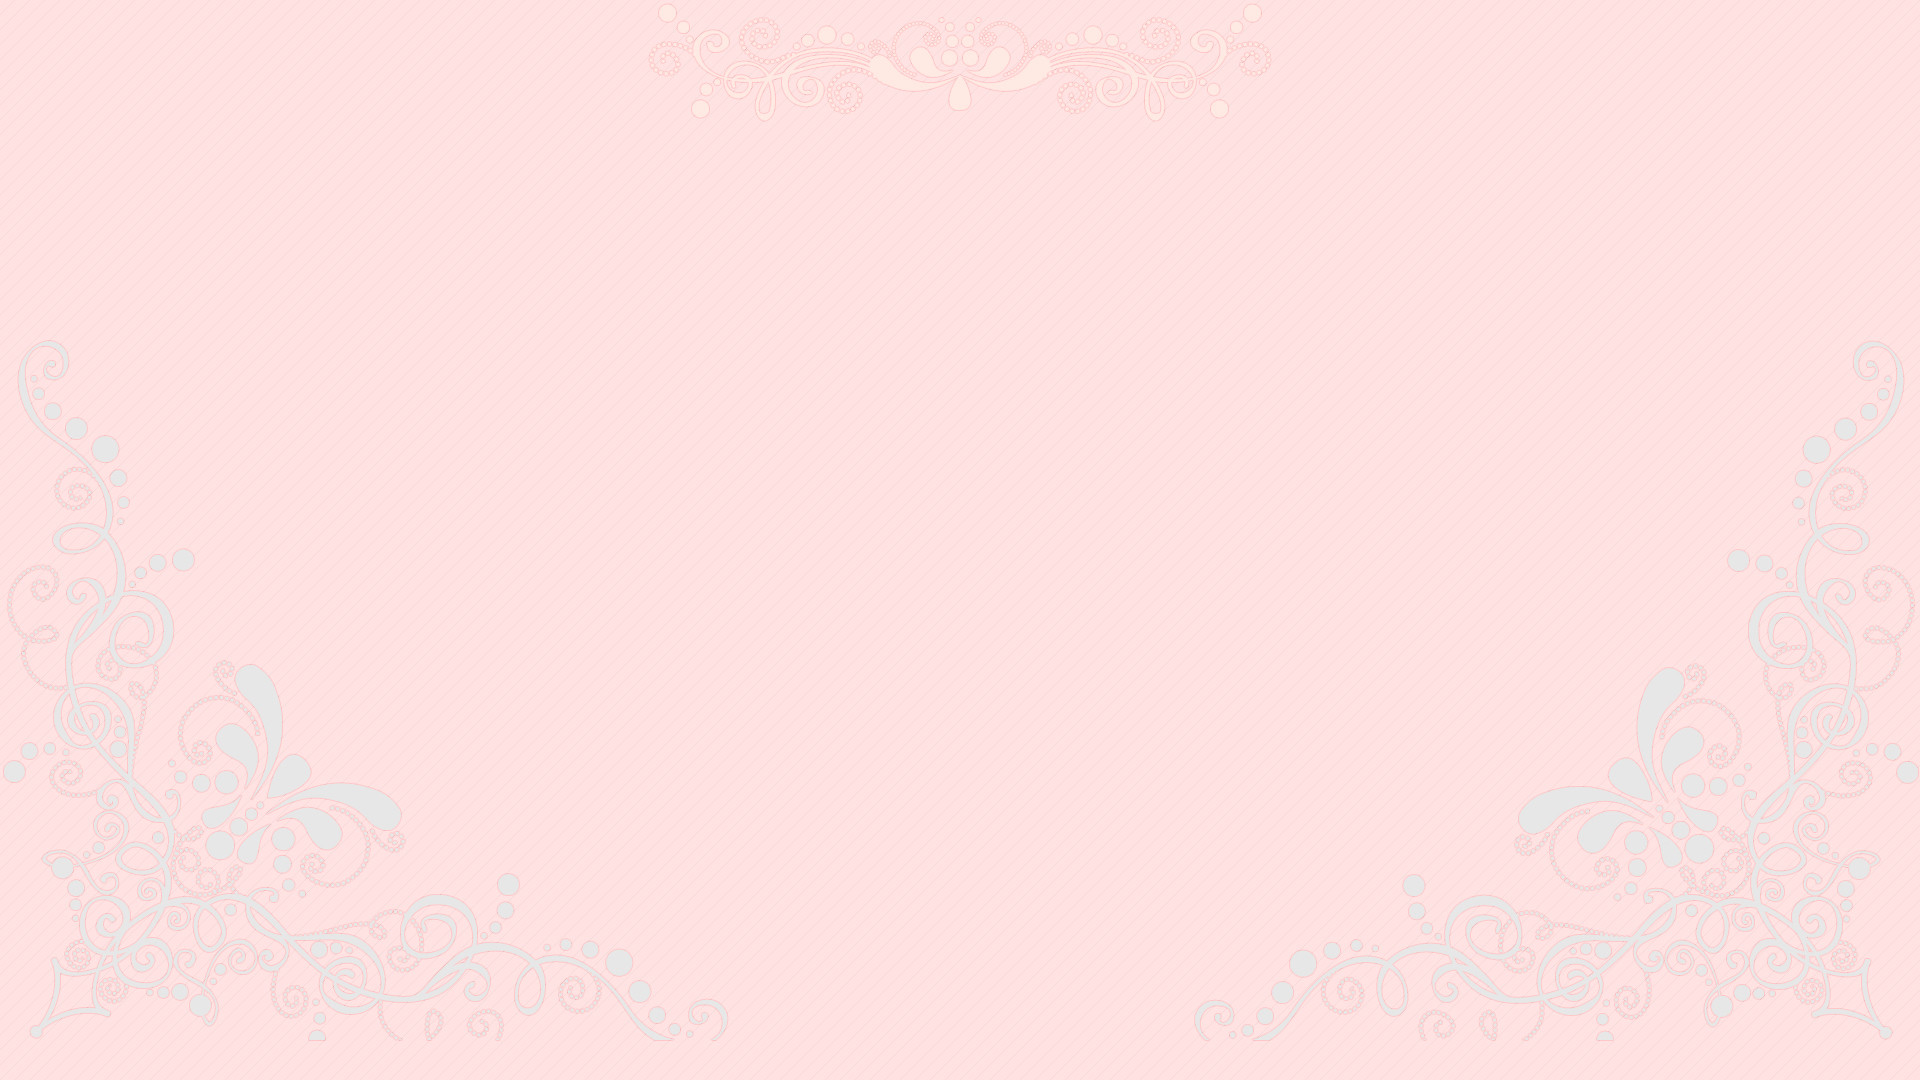 d2d2433dcfc 1920x1080 Pretty Pastel Pink Desktop Wallpaper sized at I really love the  color light pink,